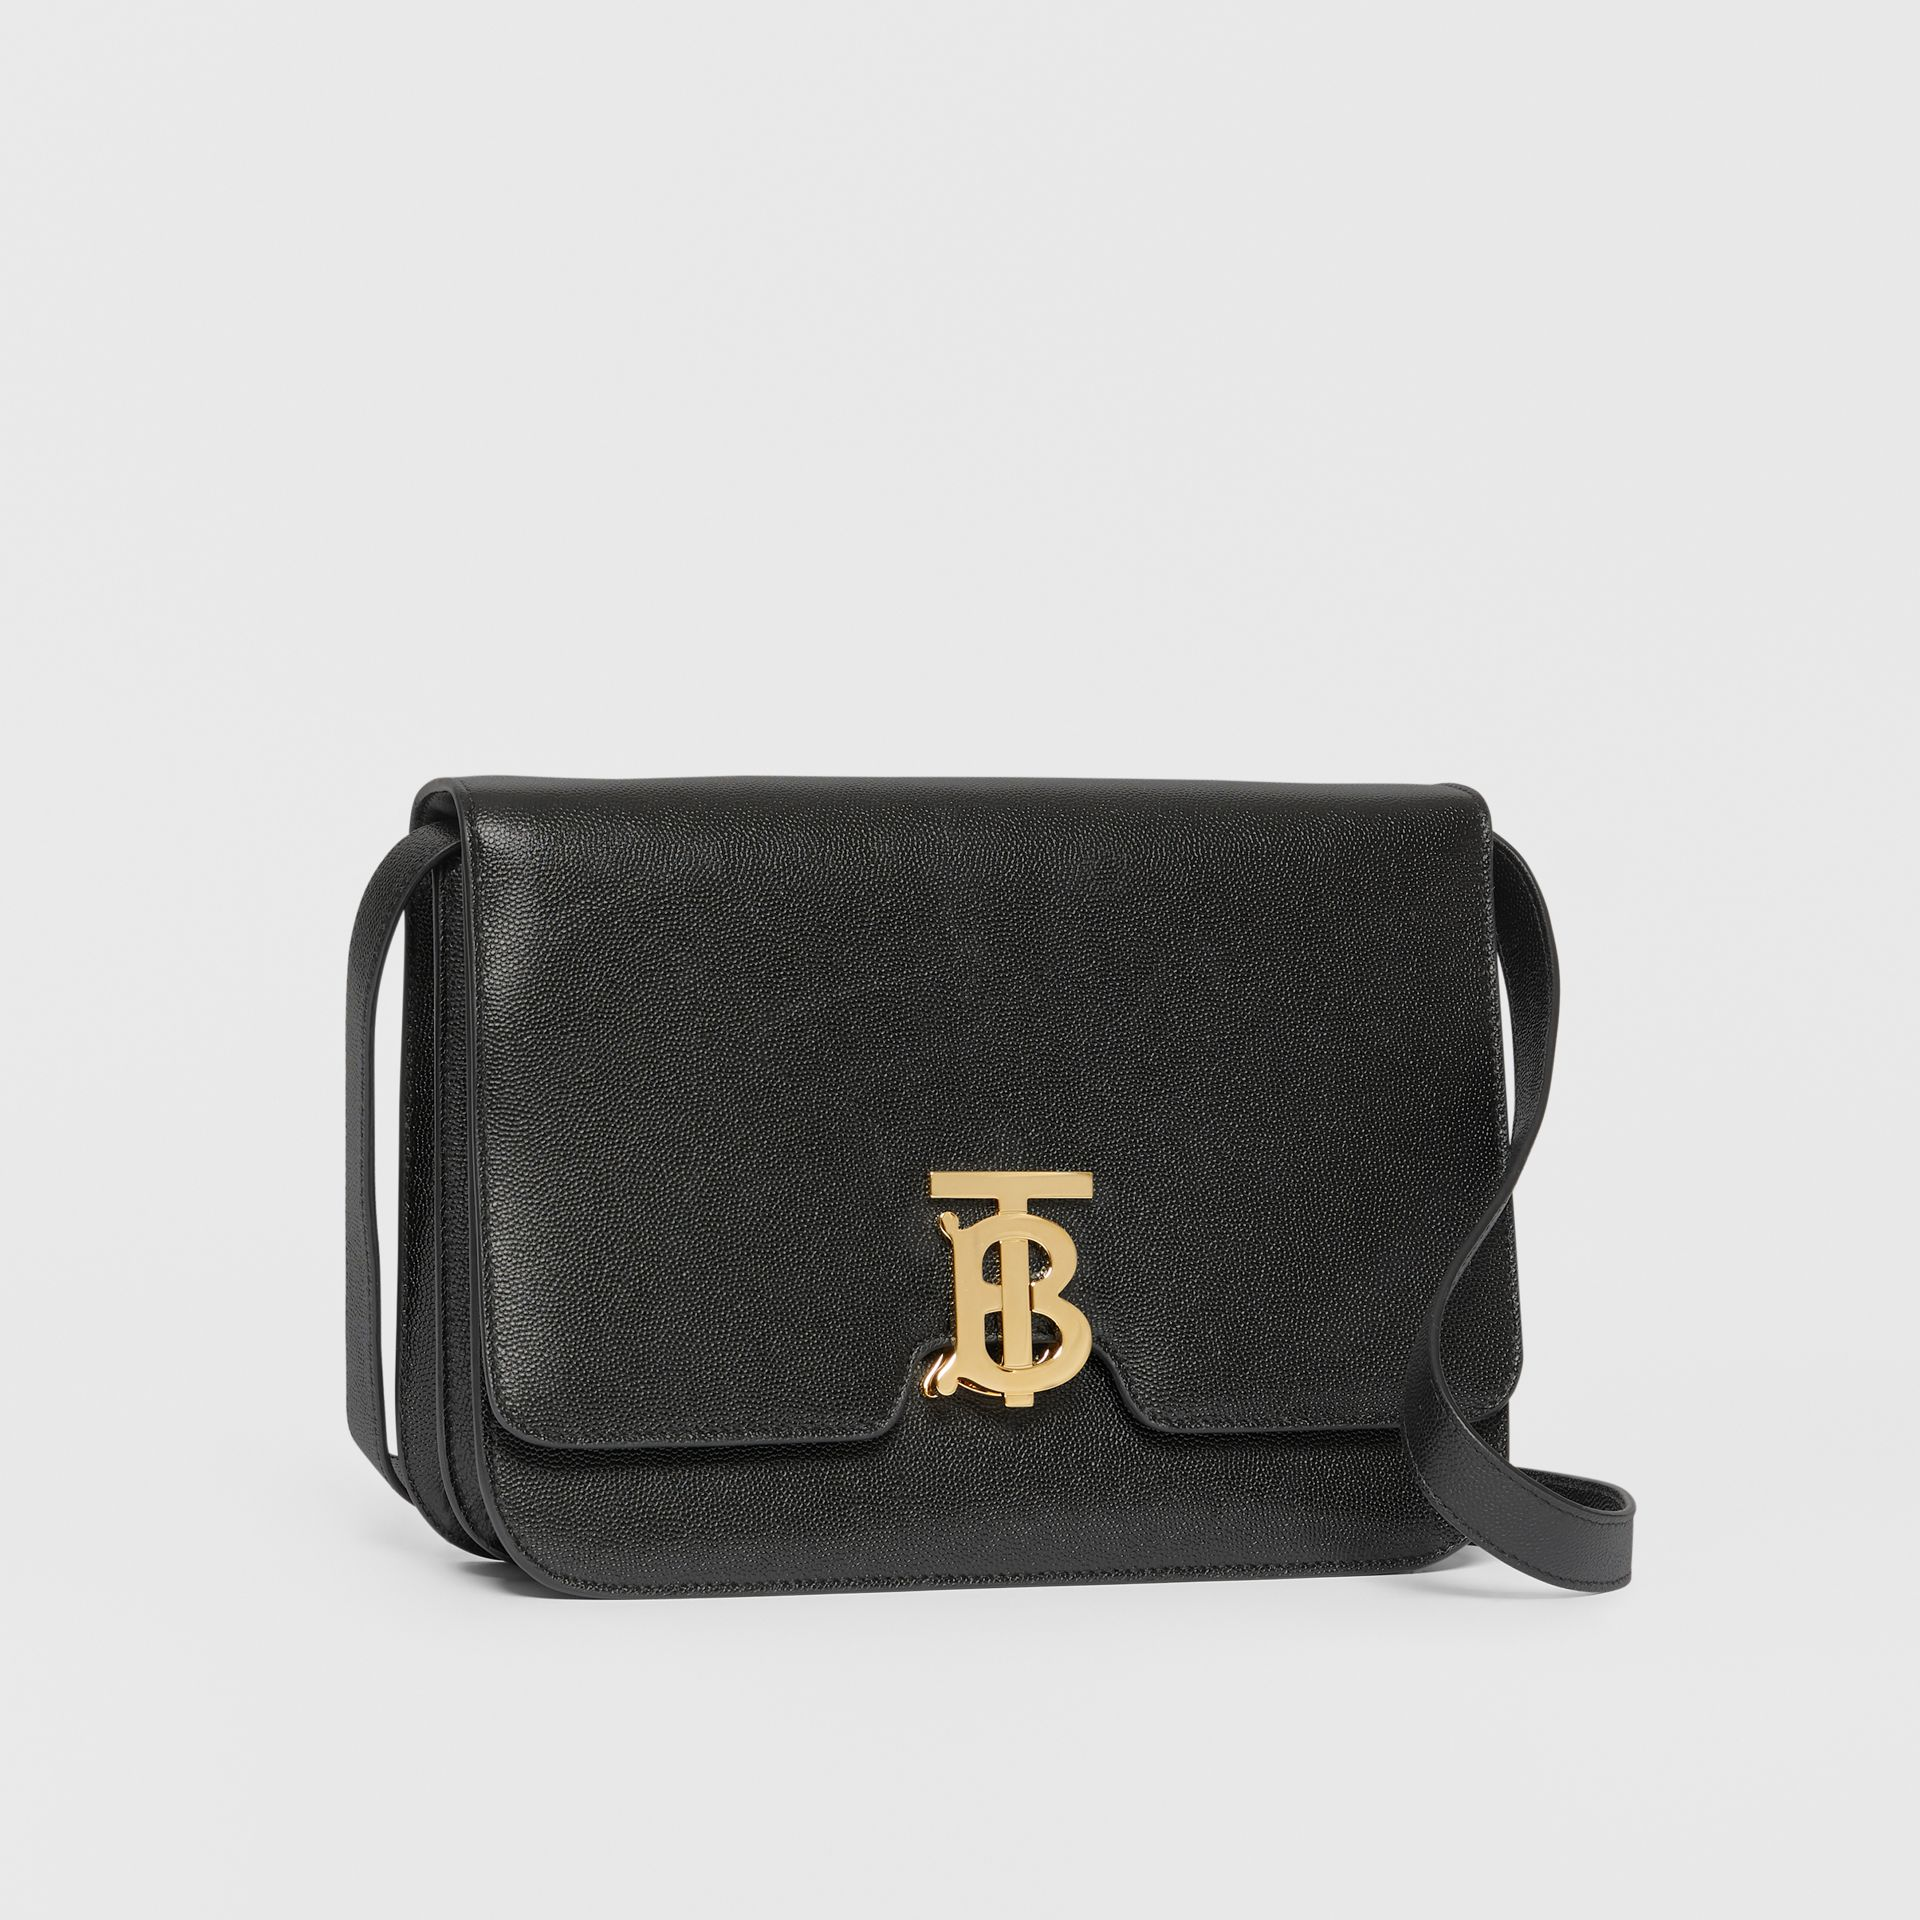 Medium Grainy Leather TB Bag in Black - Women | Burberry United Kingdom - gallery image 6